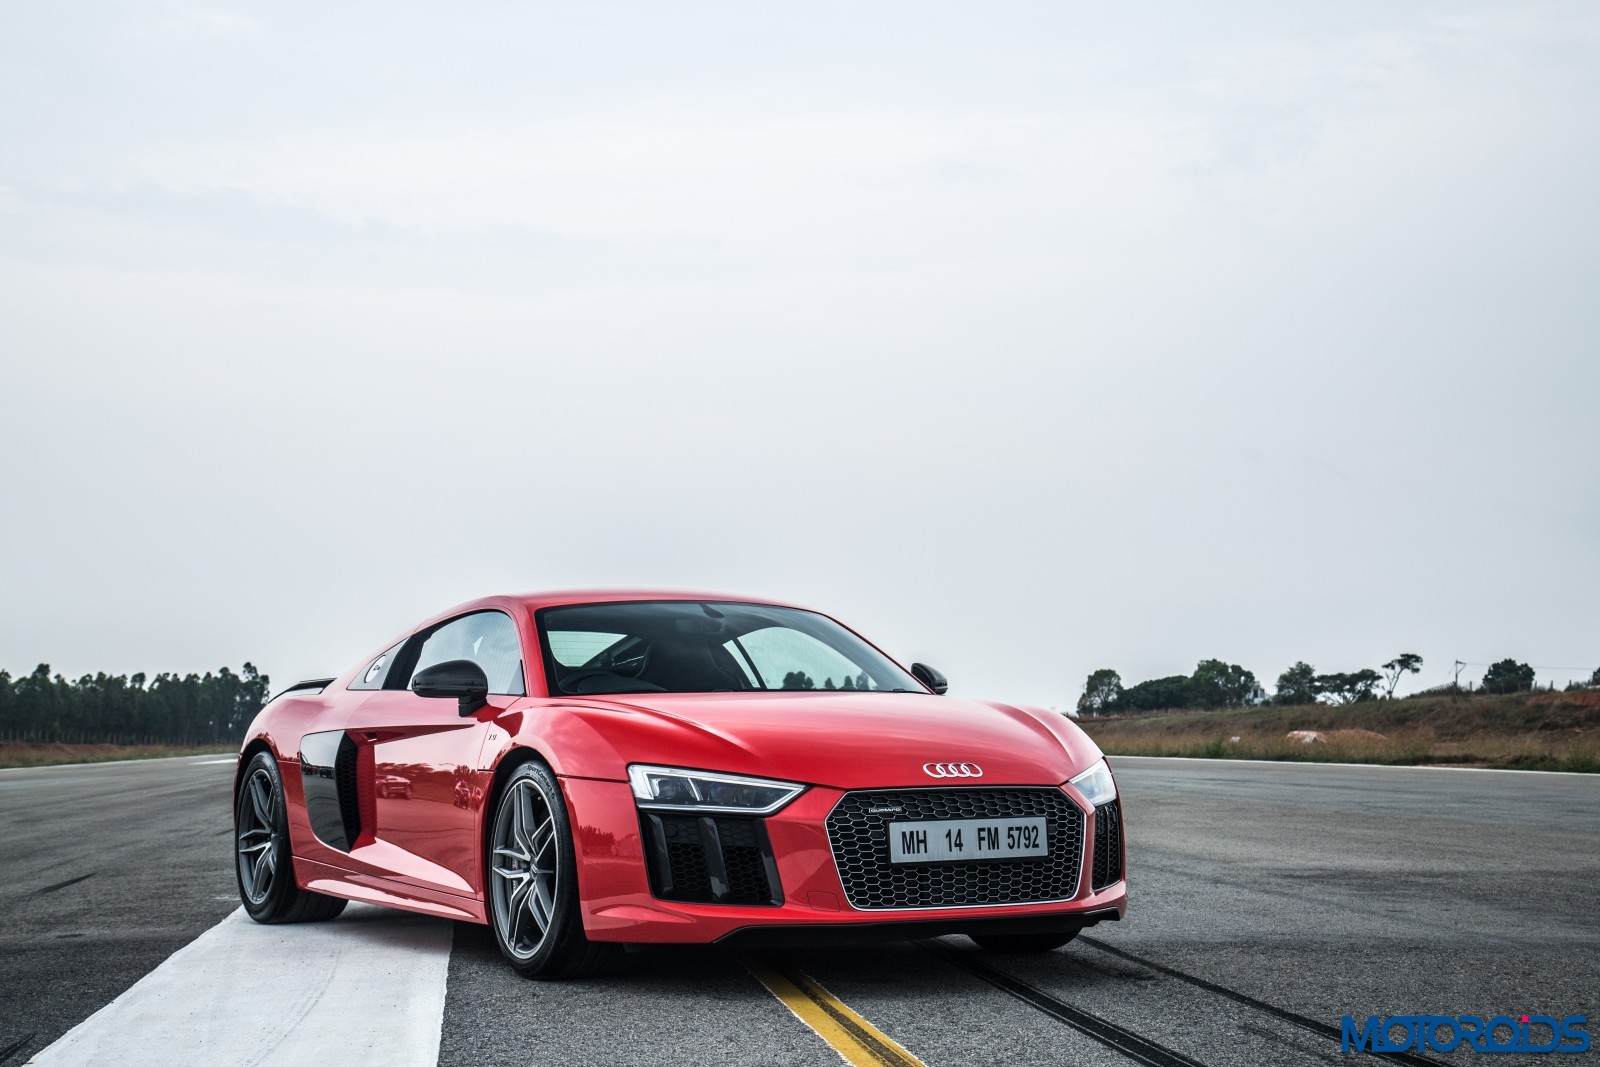 audi r8 v10 plus first drive experience flying low. Black Bedroom Furniture Sets. Home Design Ideas